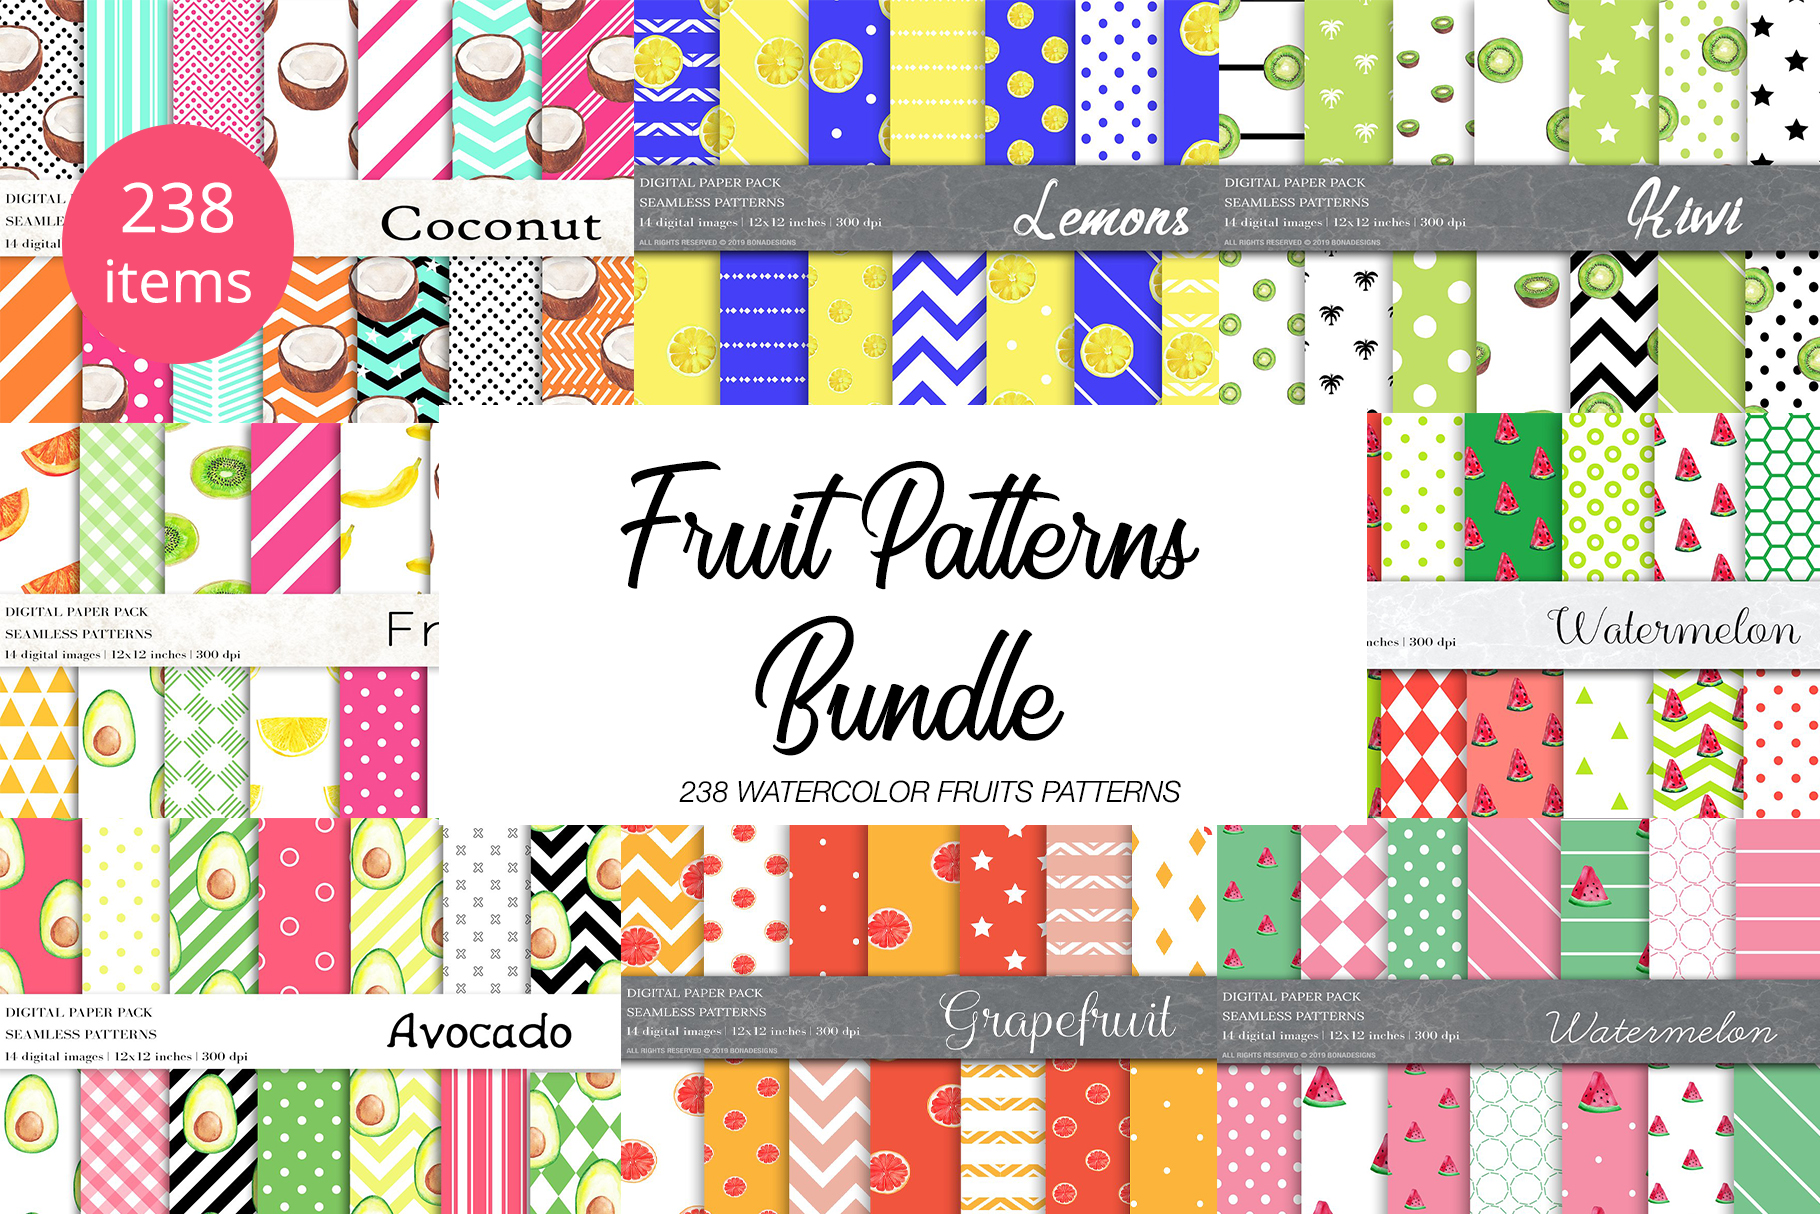 Download Free Watercolor Fruit Patterns Bundle Graphic By Bonadesigns for Cricut Explore, Silhouette and other cutting machines.